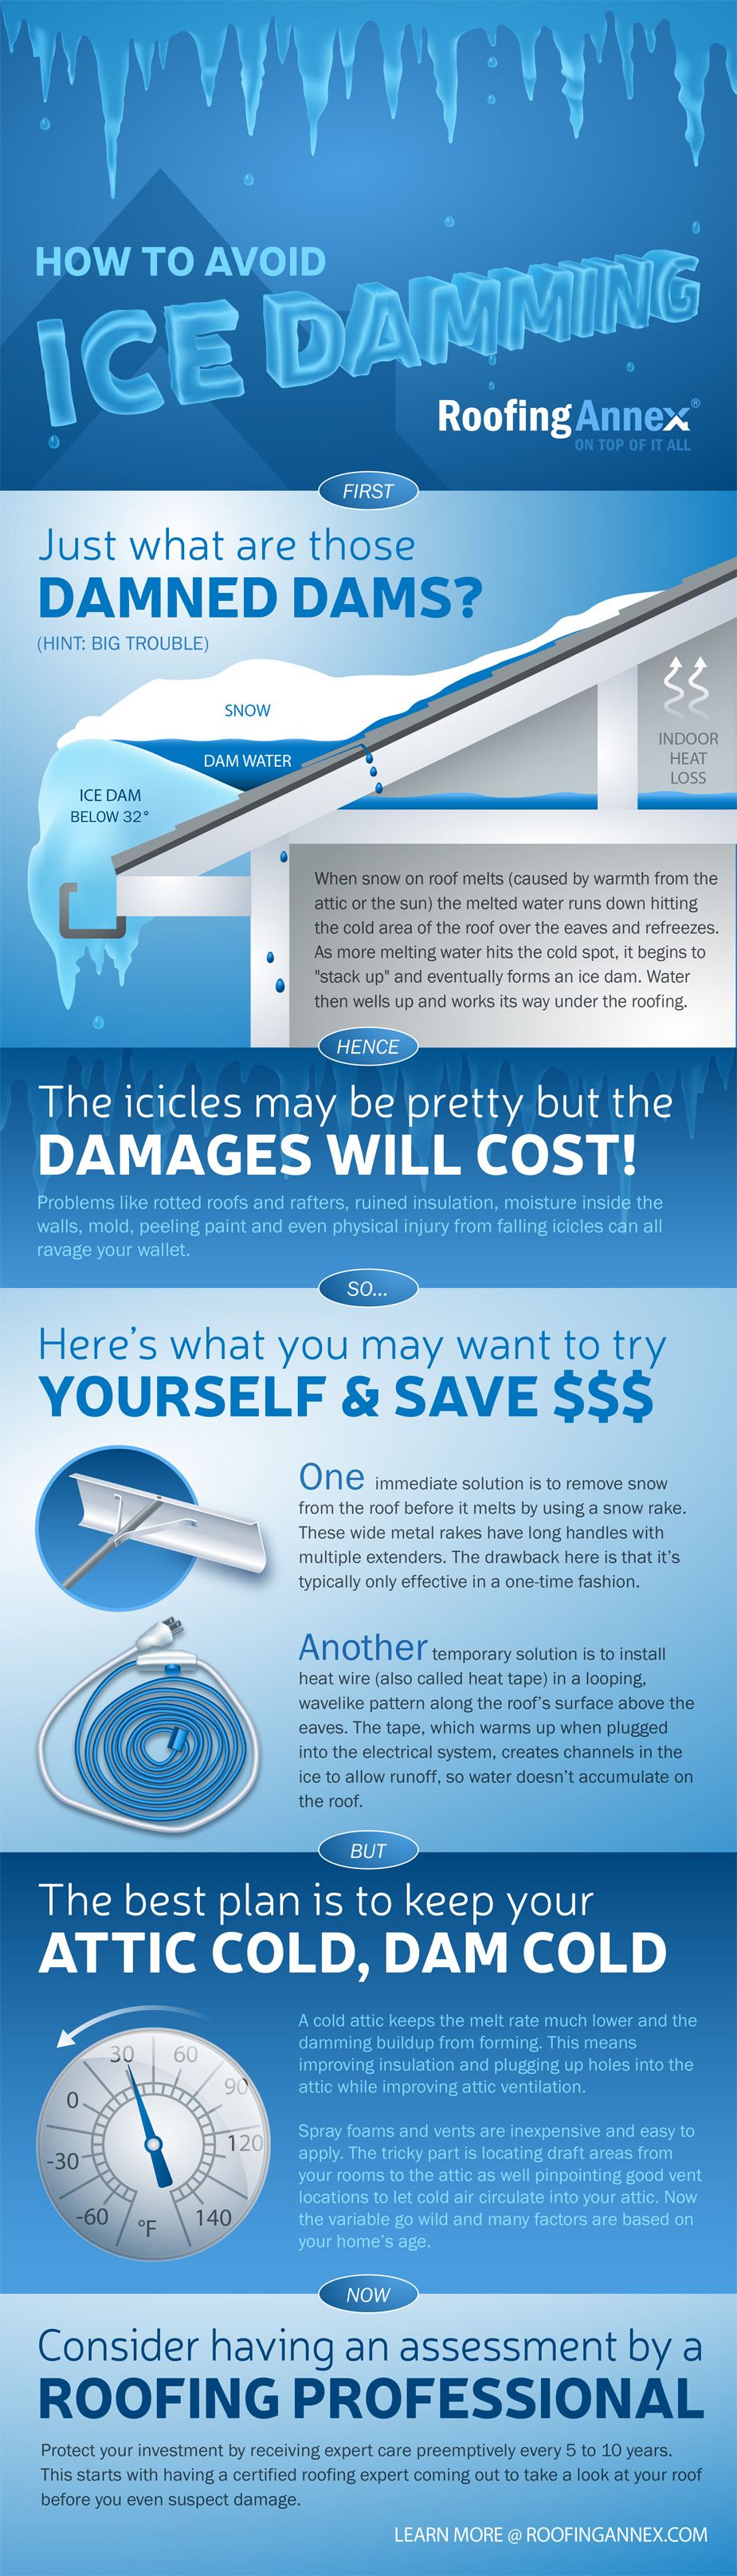 How To Protect Your Roof From Ice Dams (Infographic)